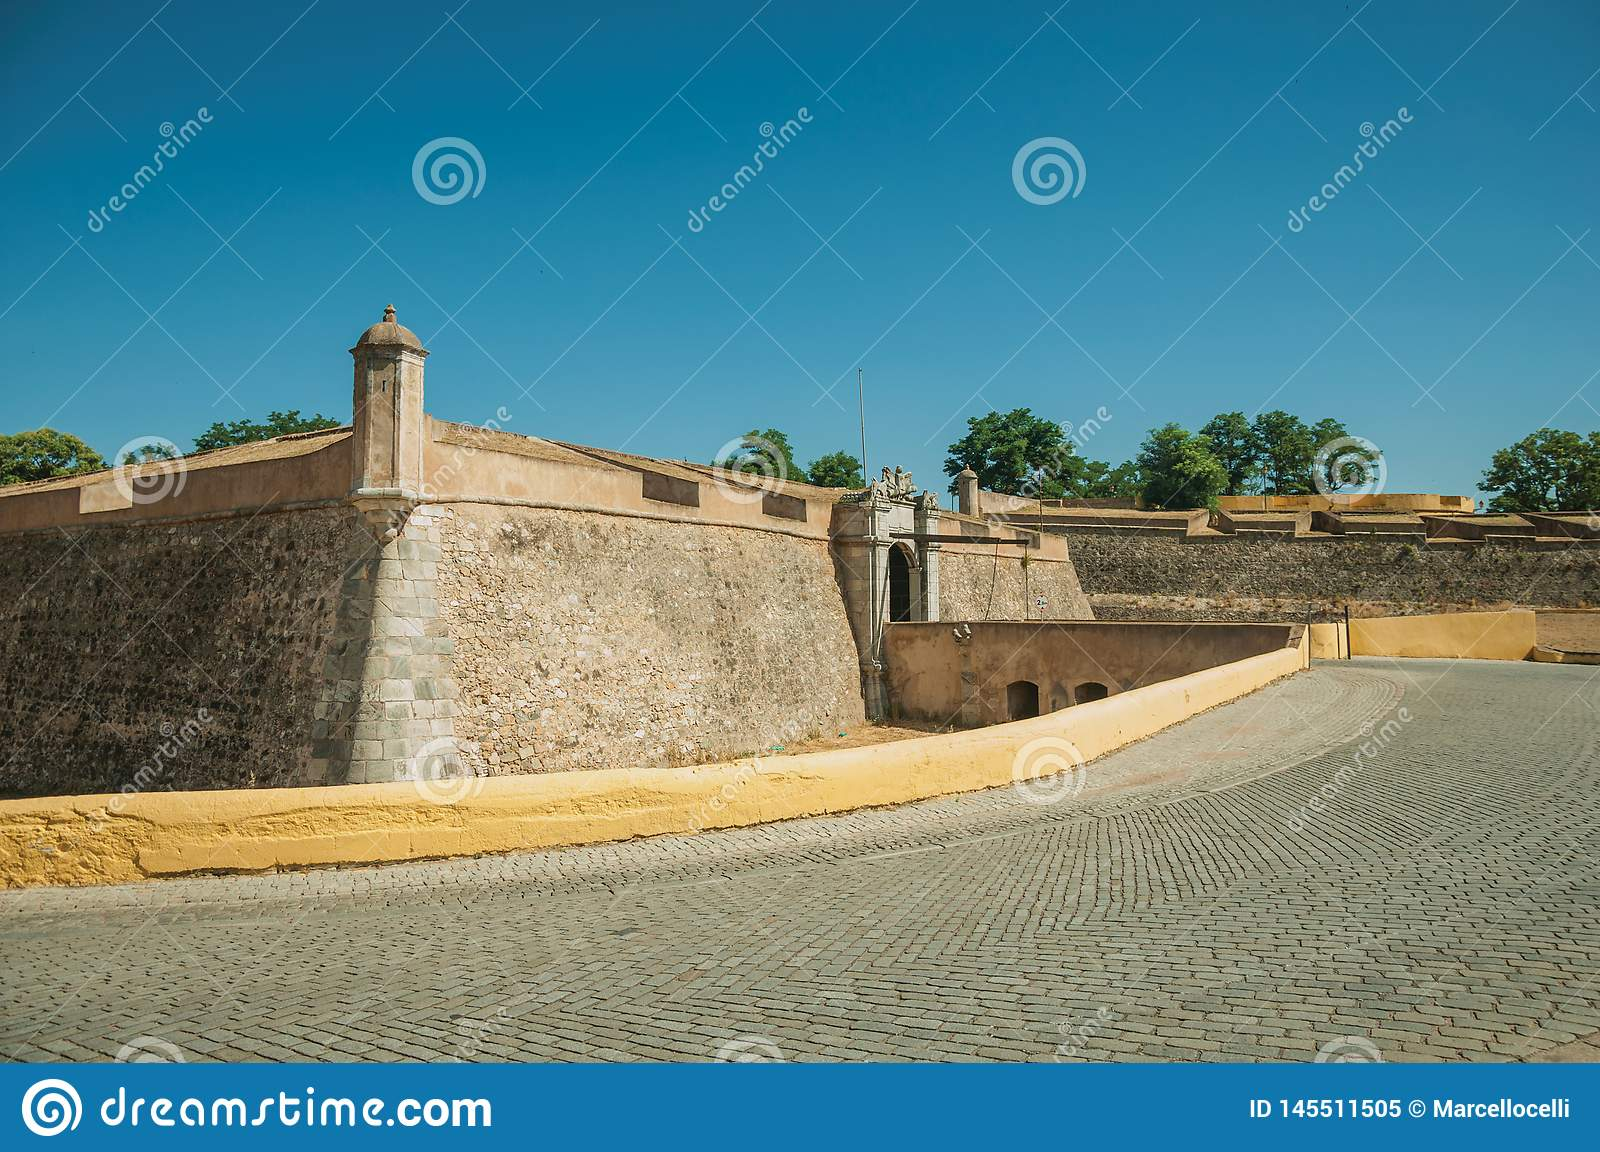 Street at the city wall with an entrance and small bridge